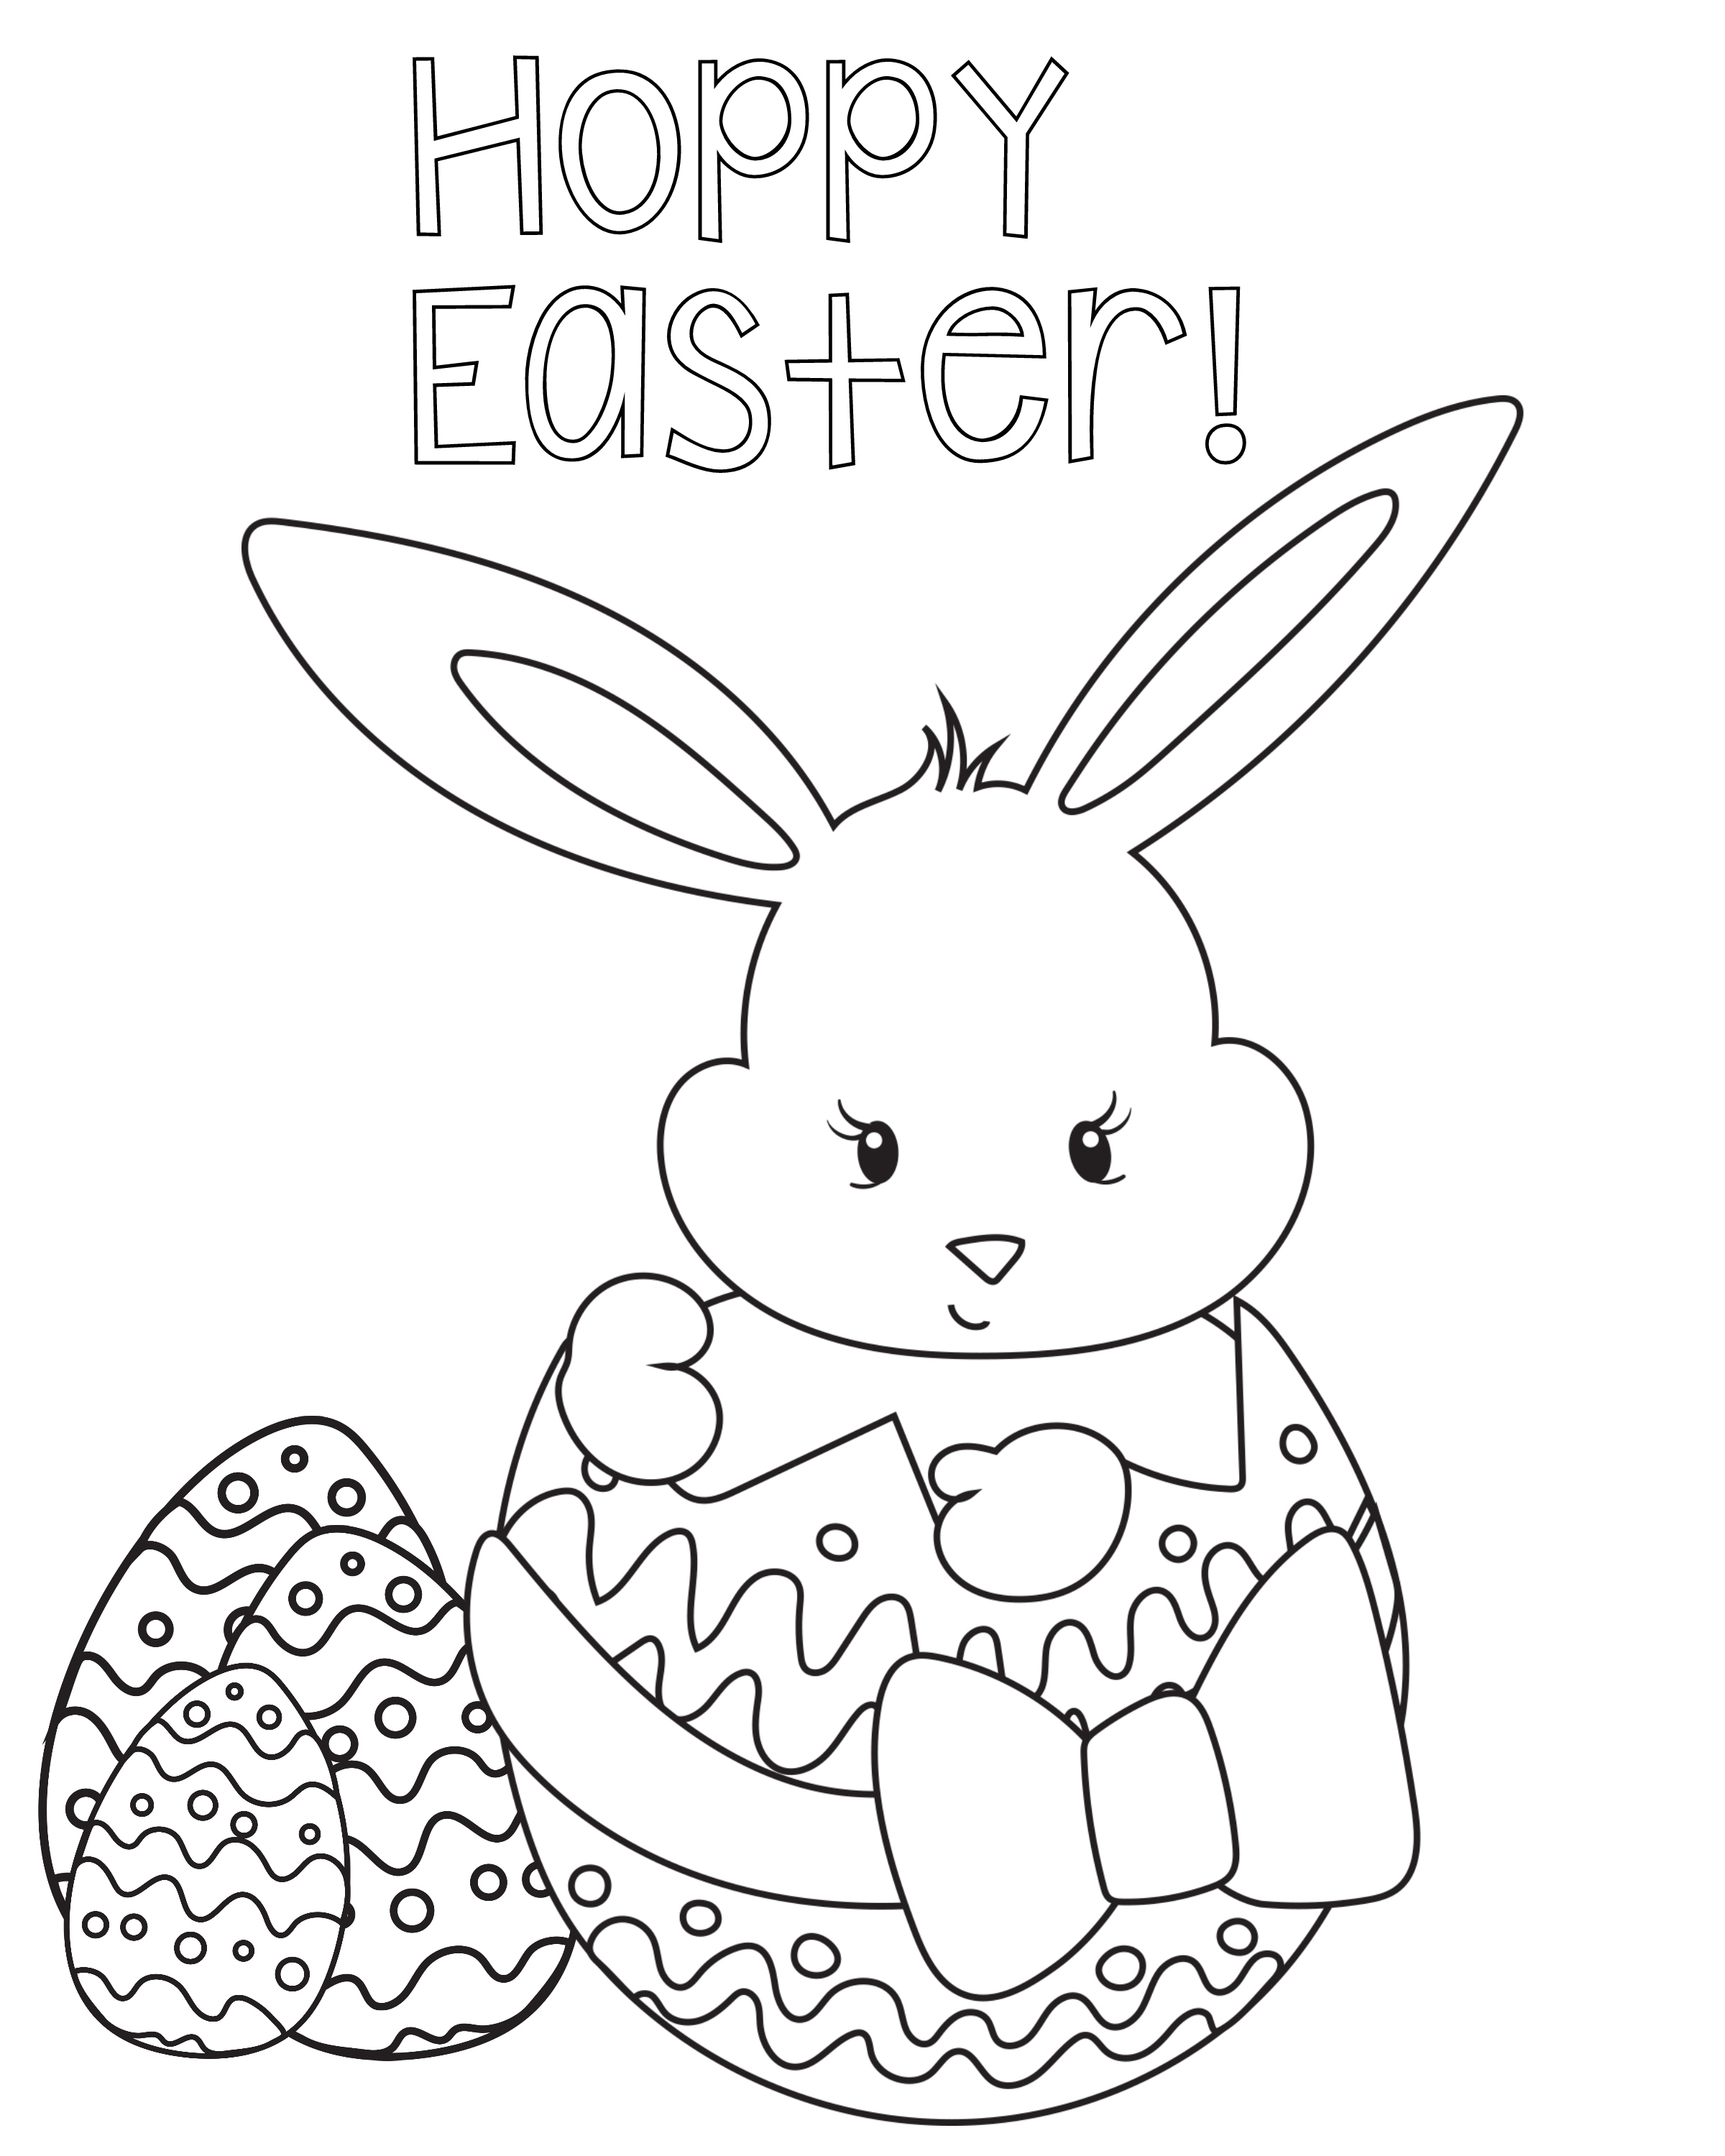 Delighted Bunny Print Out Coloring Pages Easter for Kids Crazy Printable Of Easter Coloring Pages for Kids Crazy Little Projects Printable